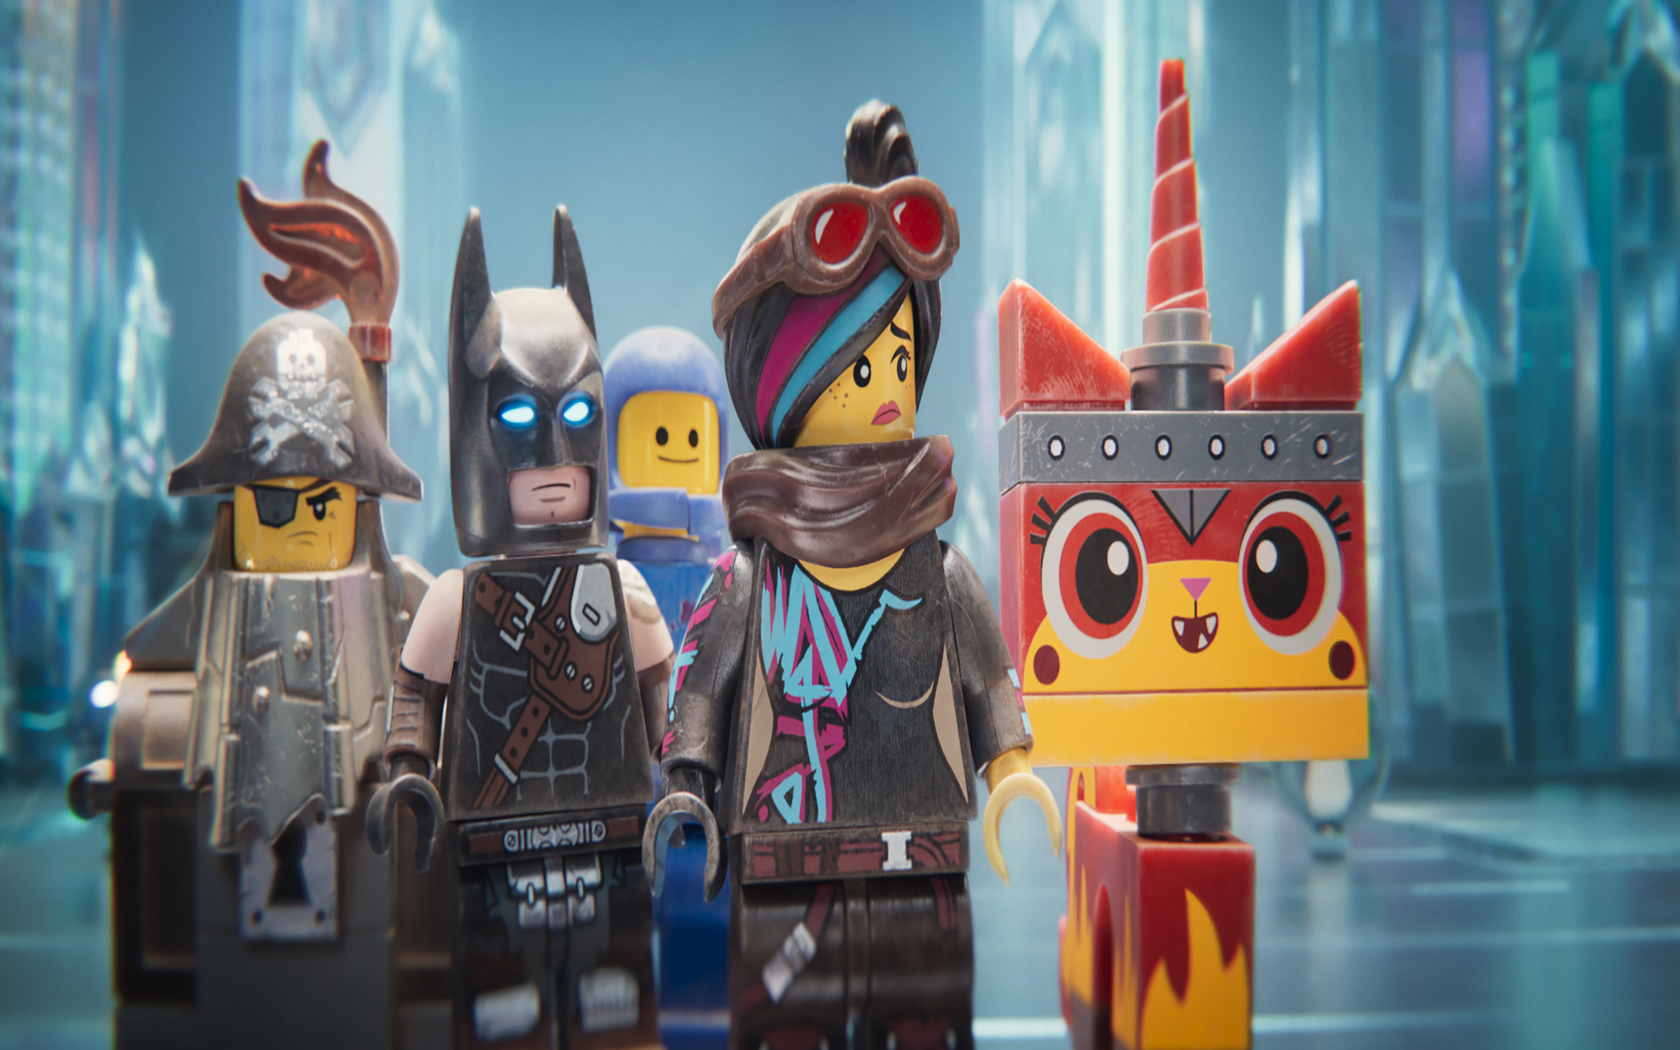 Tanweer - The Lego Movie II: The Second Part